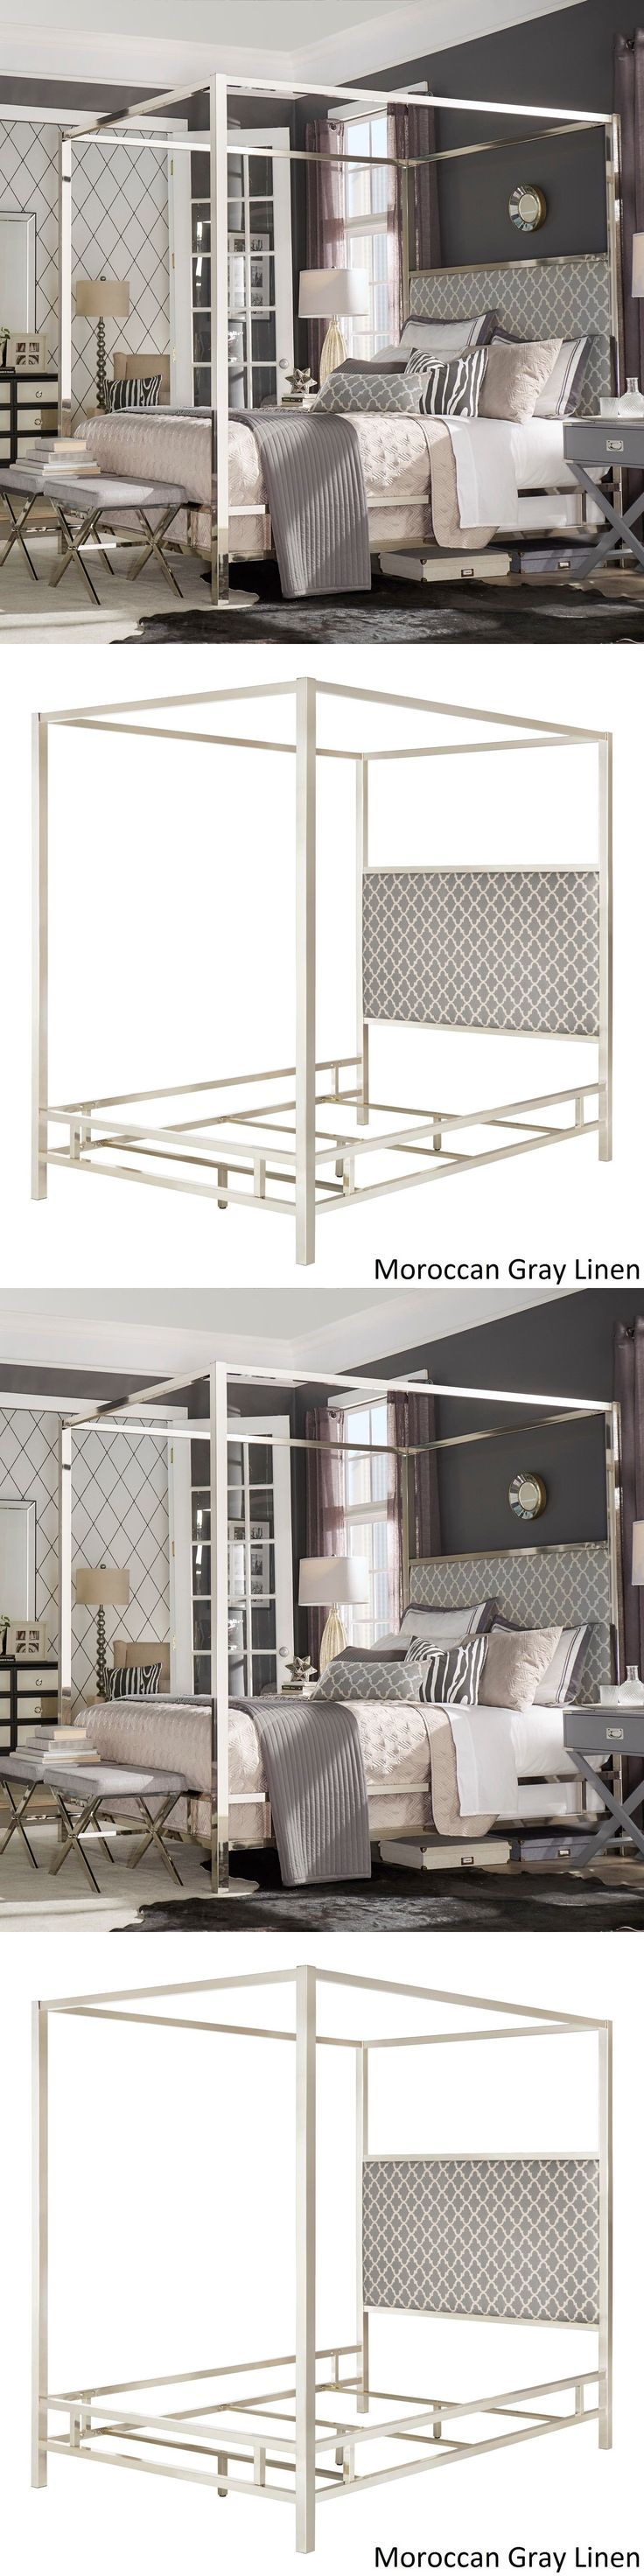 Canopies and Netting 48090: Canopy Bed Frame W Gray Poster Bed Queen Size Beds Metal Bedroom Silver Frame -> BUY IT NOW ONLY: $854.99 on eBay!